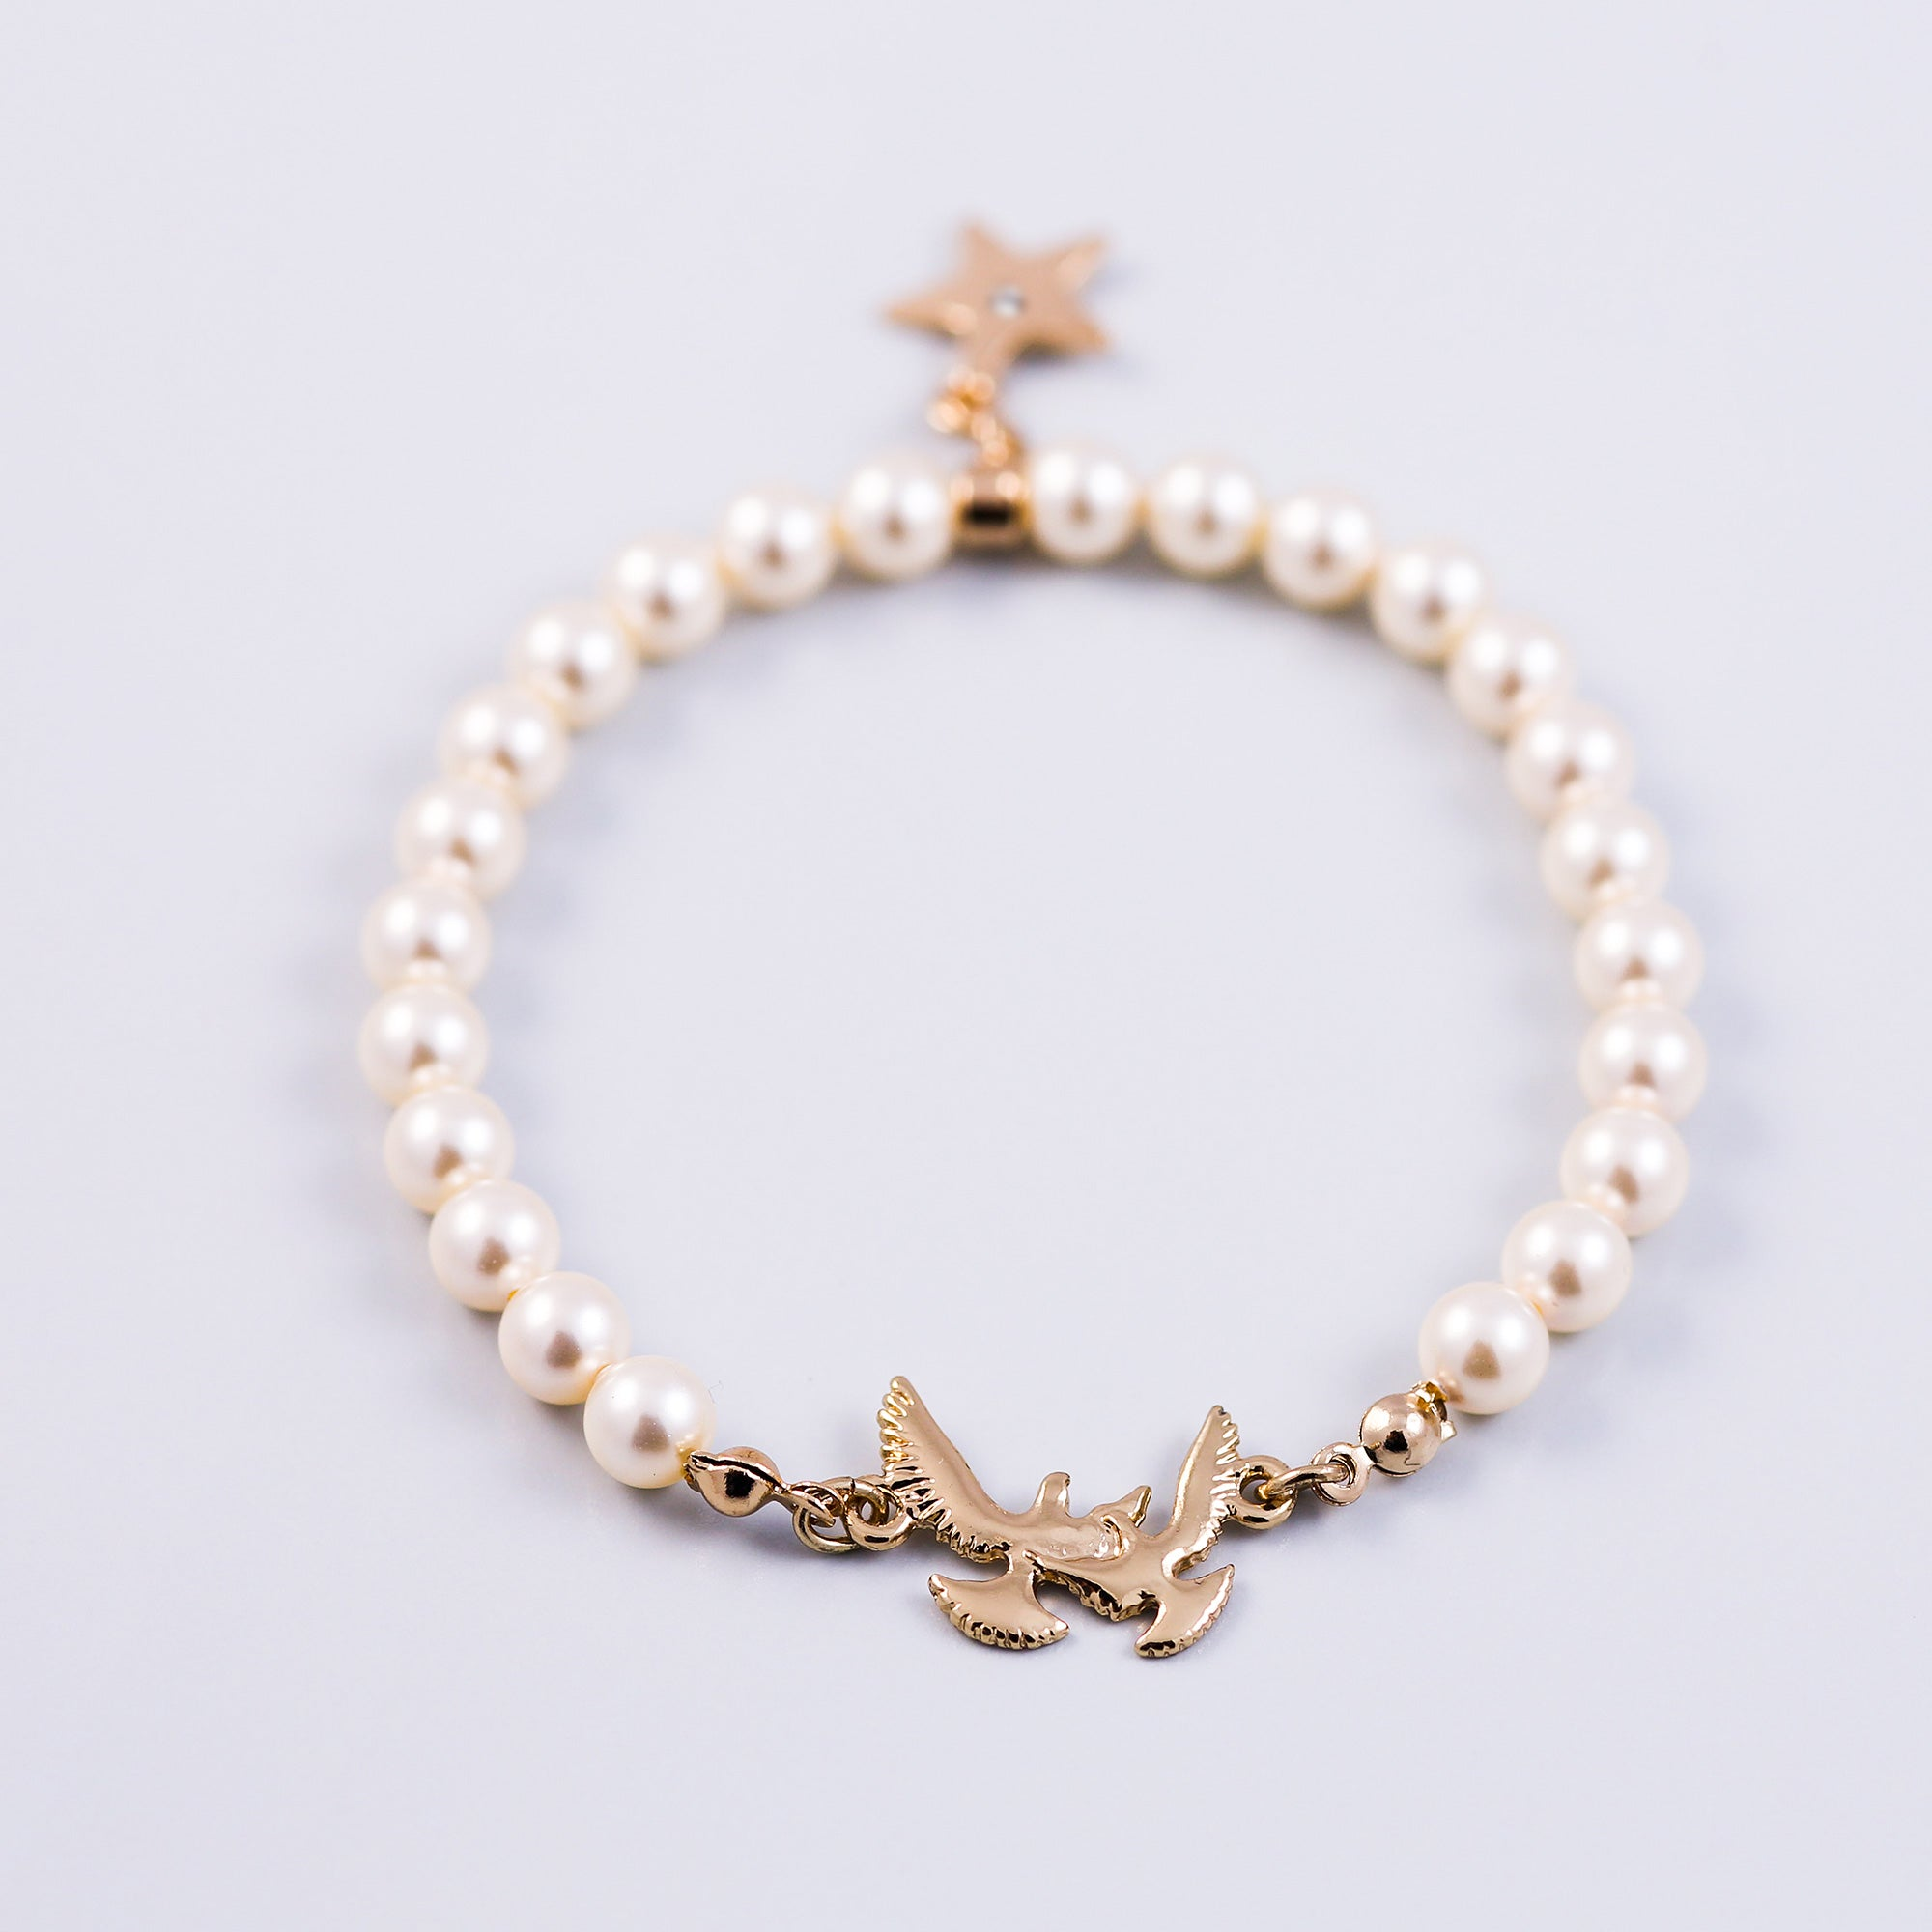 Personalised Bird Pearl Bracelet Made with Pearls from Swarovski ®